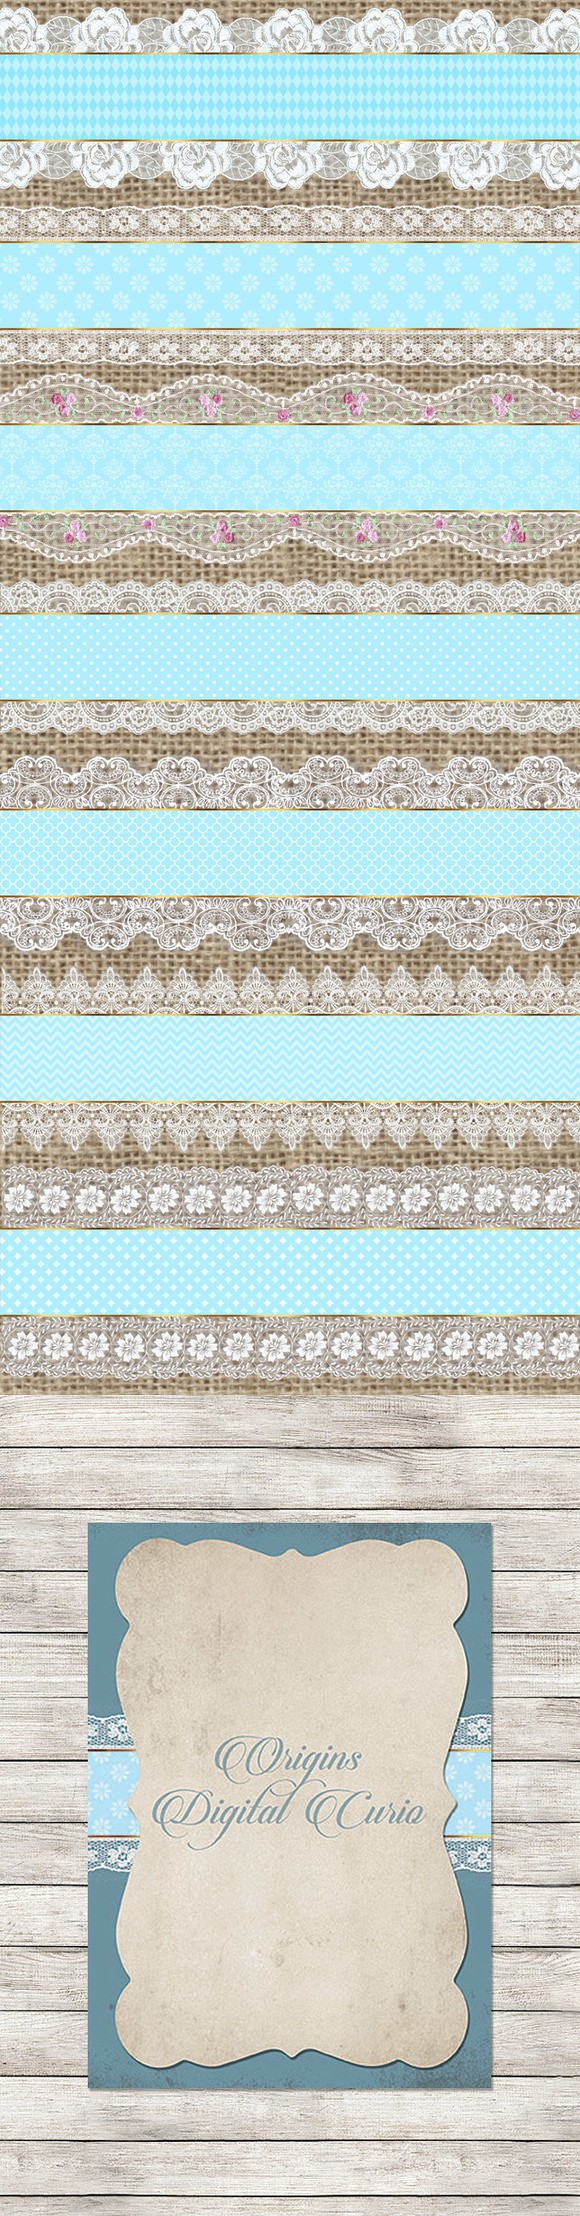 Blue and White Lace Trim Clipart. Printables. $2.00